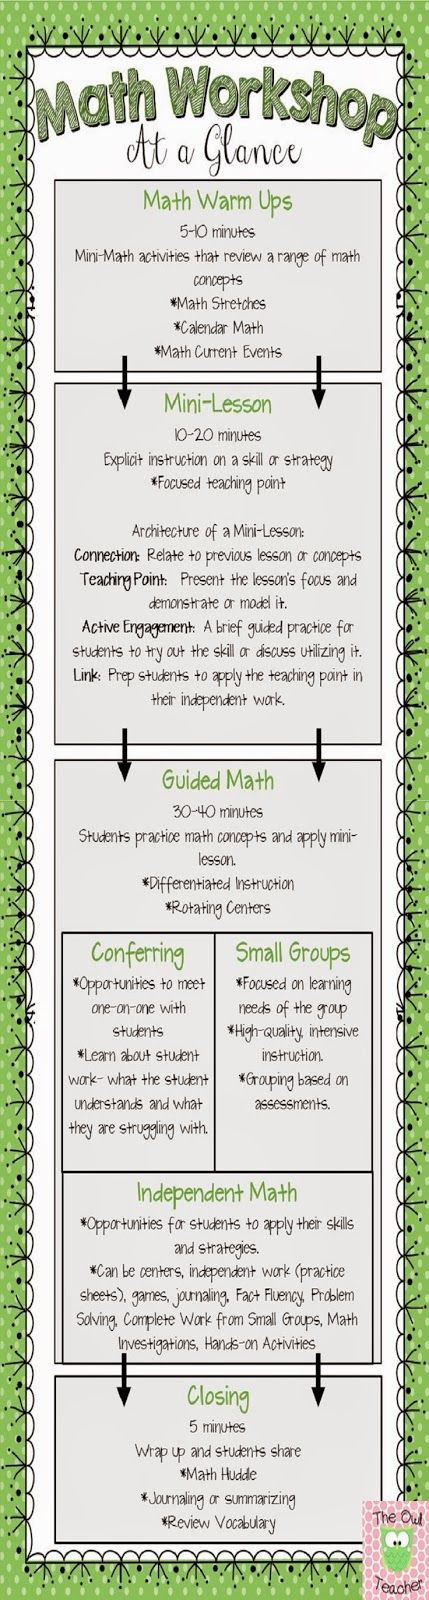 Math Workshop in Action | Pinterest | Math, Teacher and Third